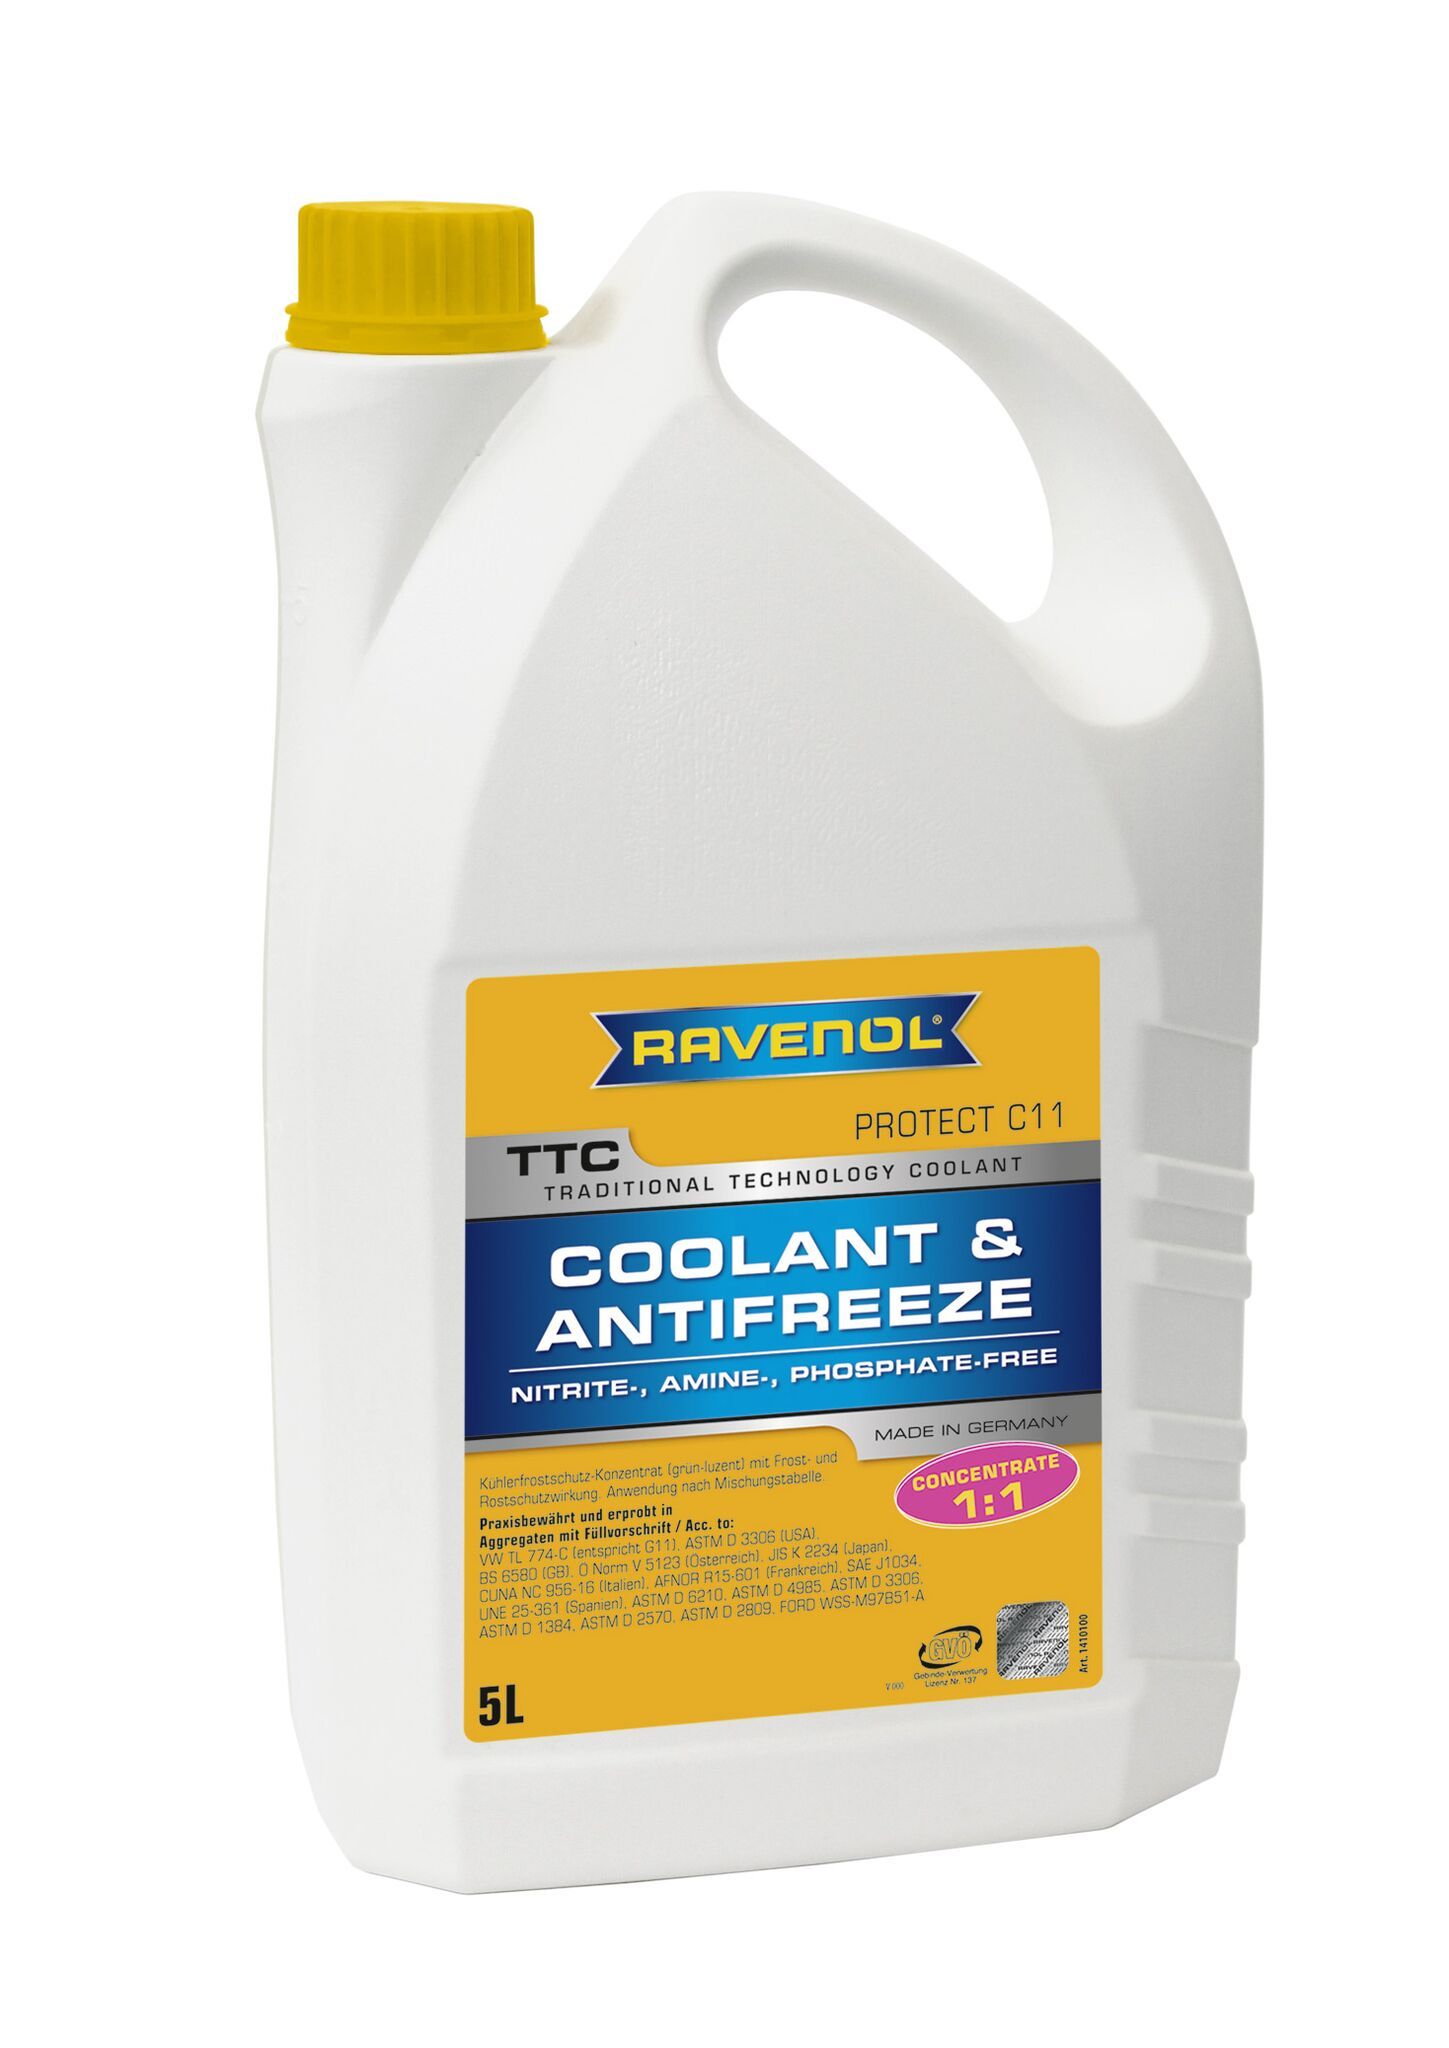 RAVENOL TTC - Protect C11 Concentrate 5L